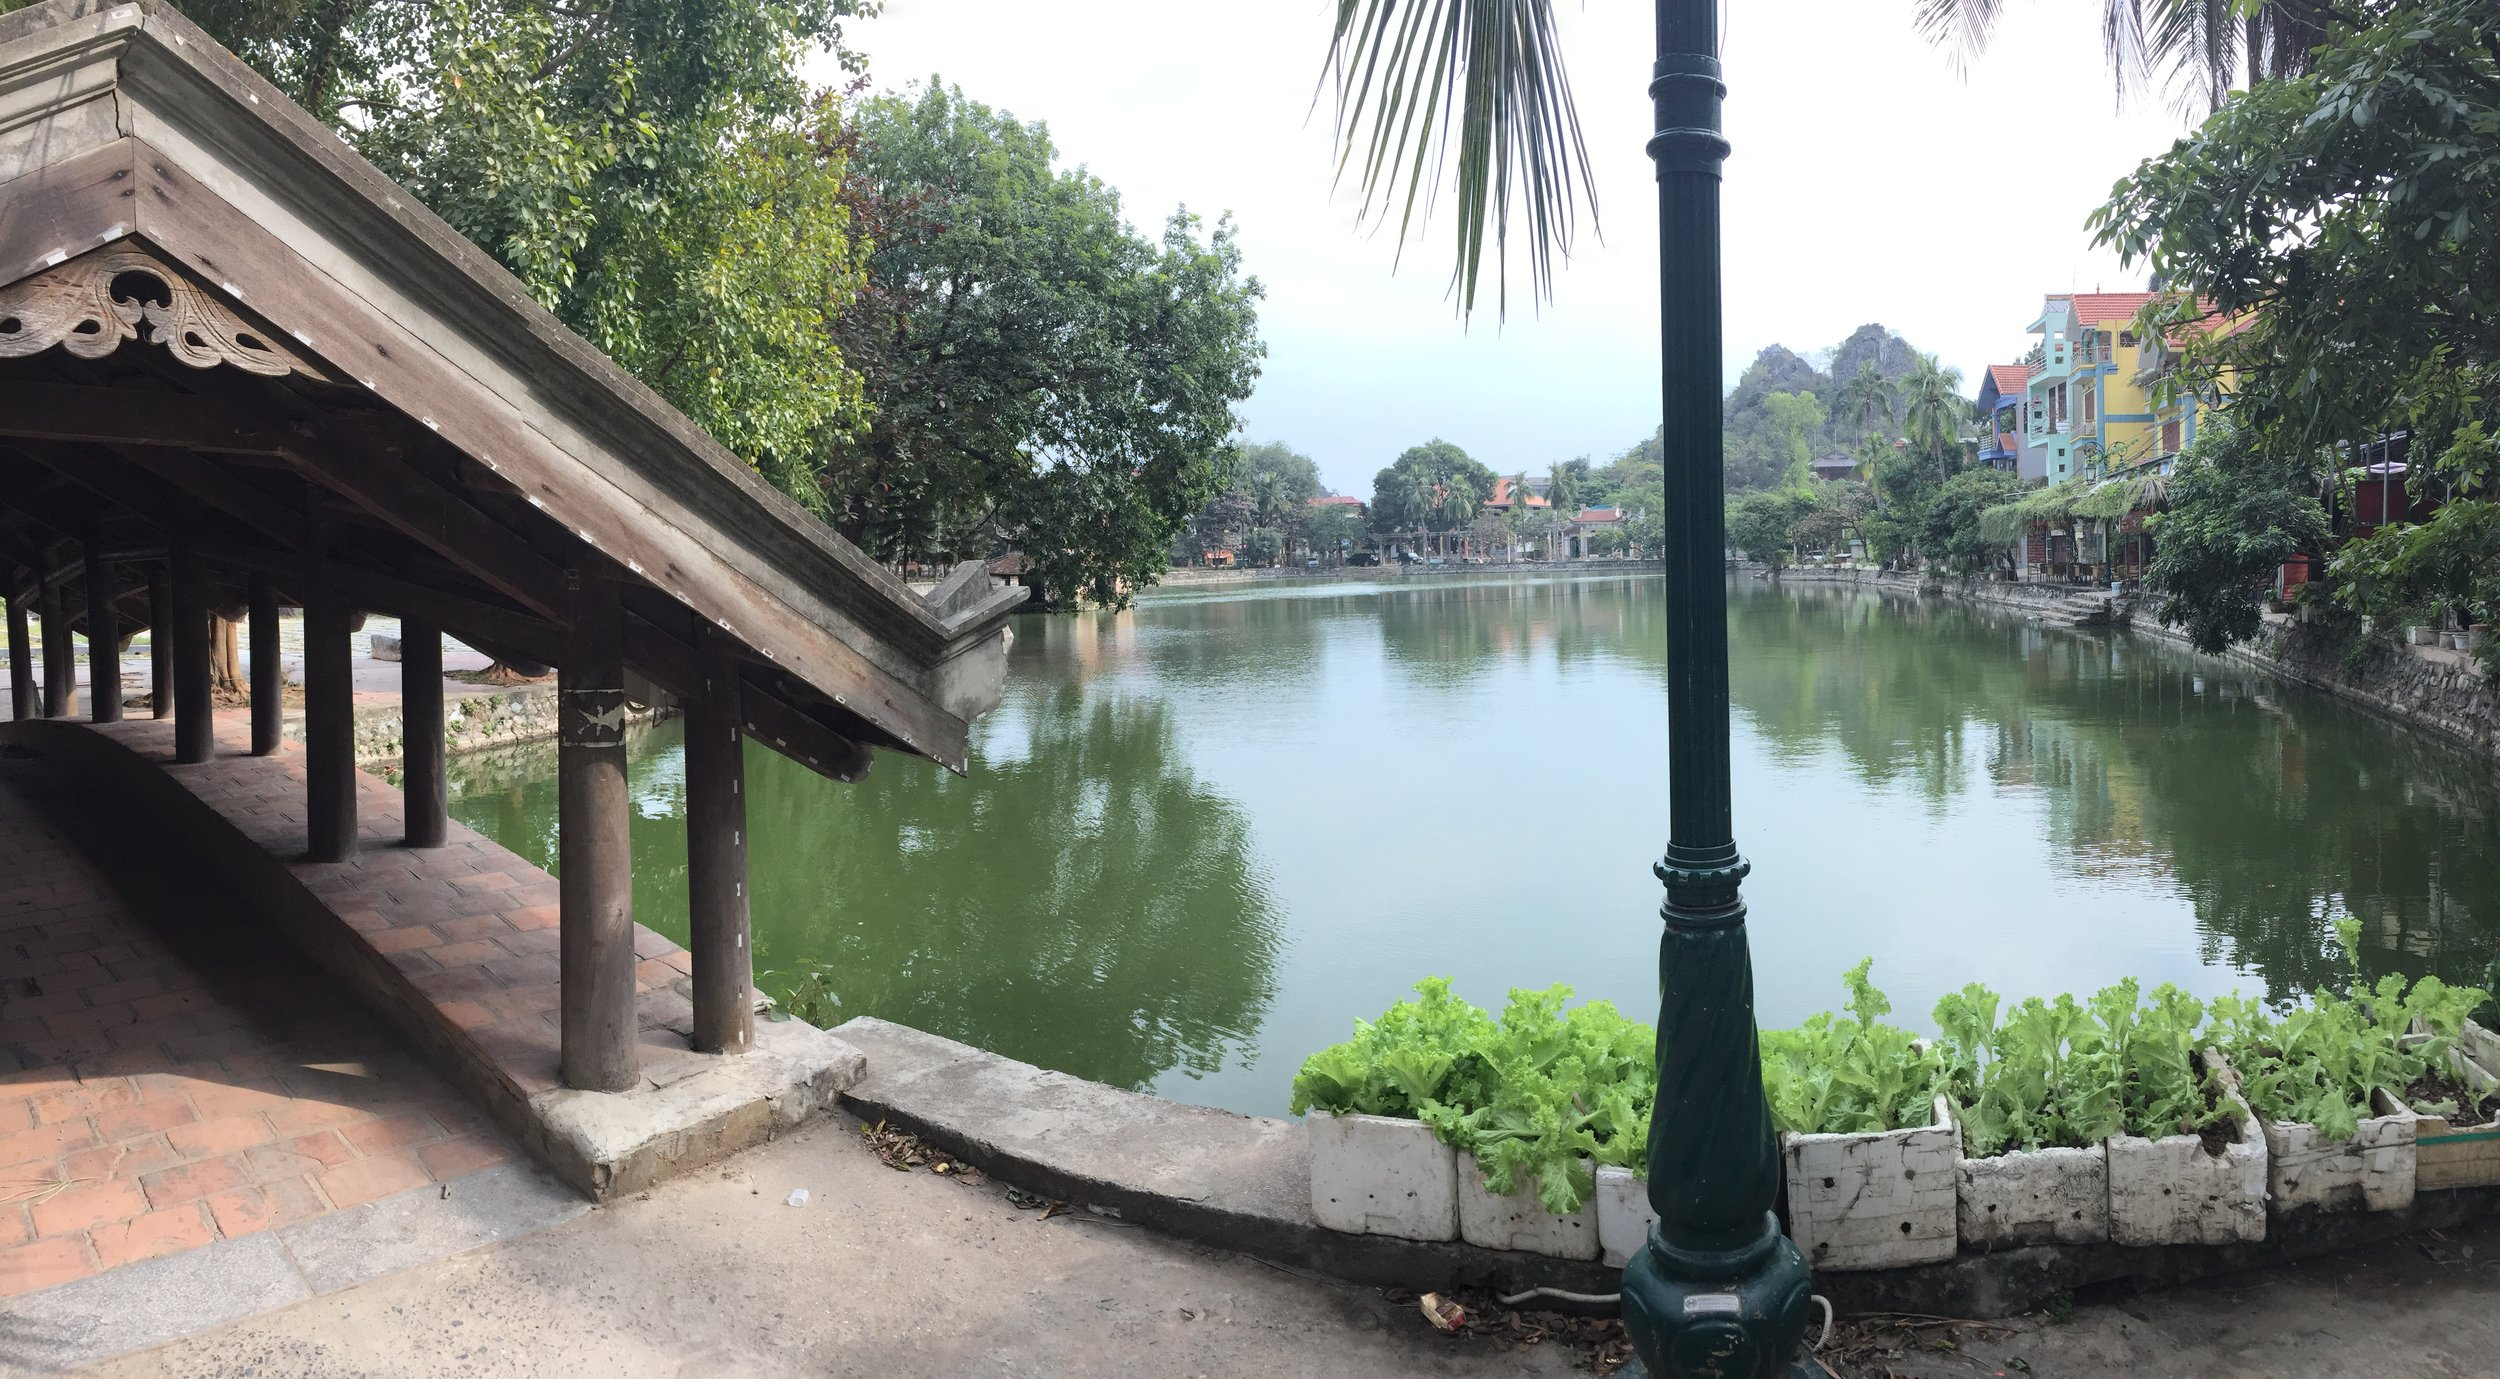 Chua Thay temple sits in the middle of a lake.